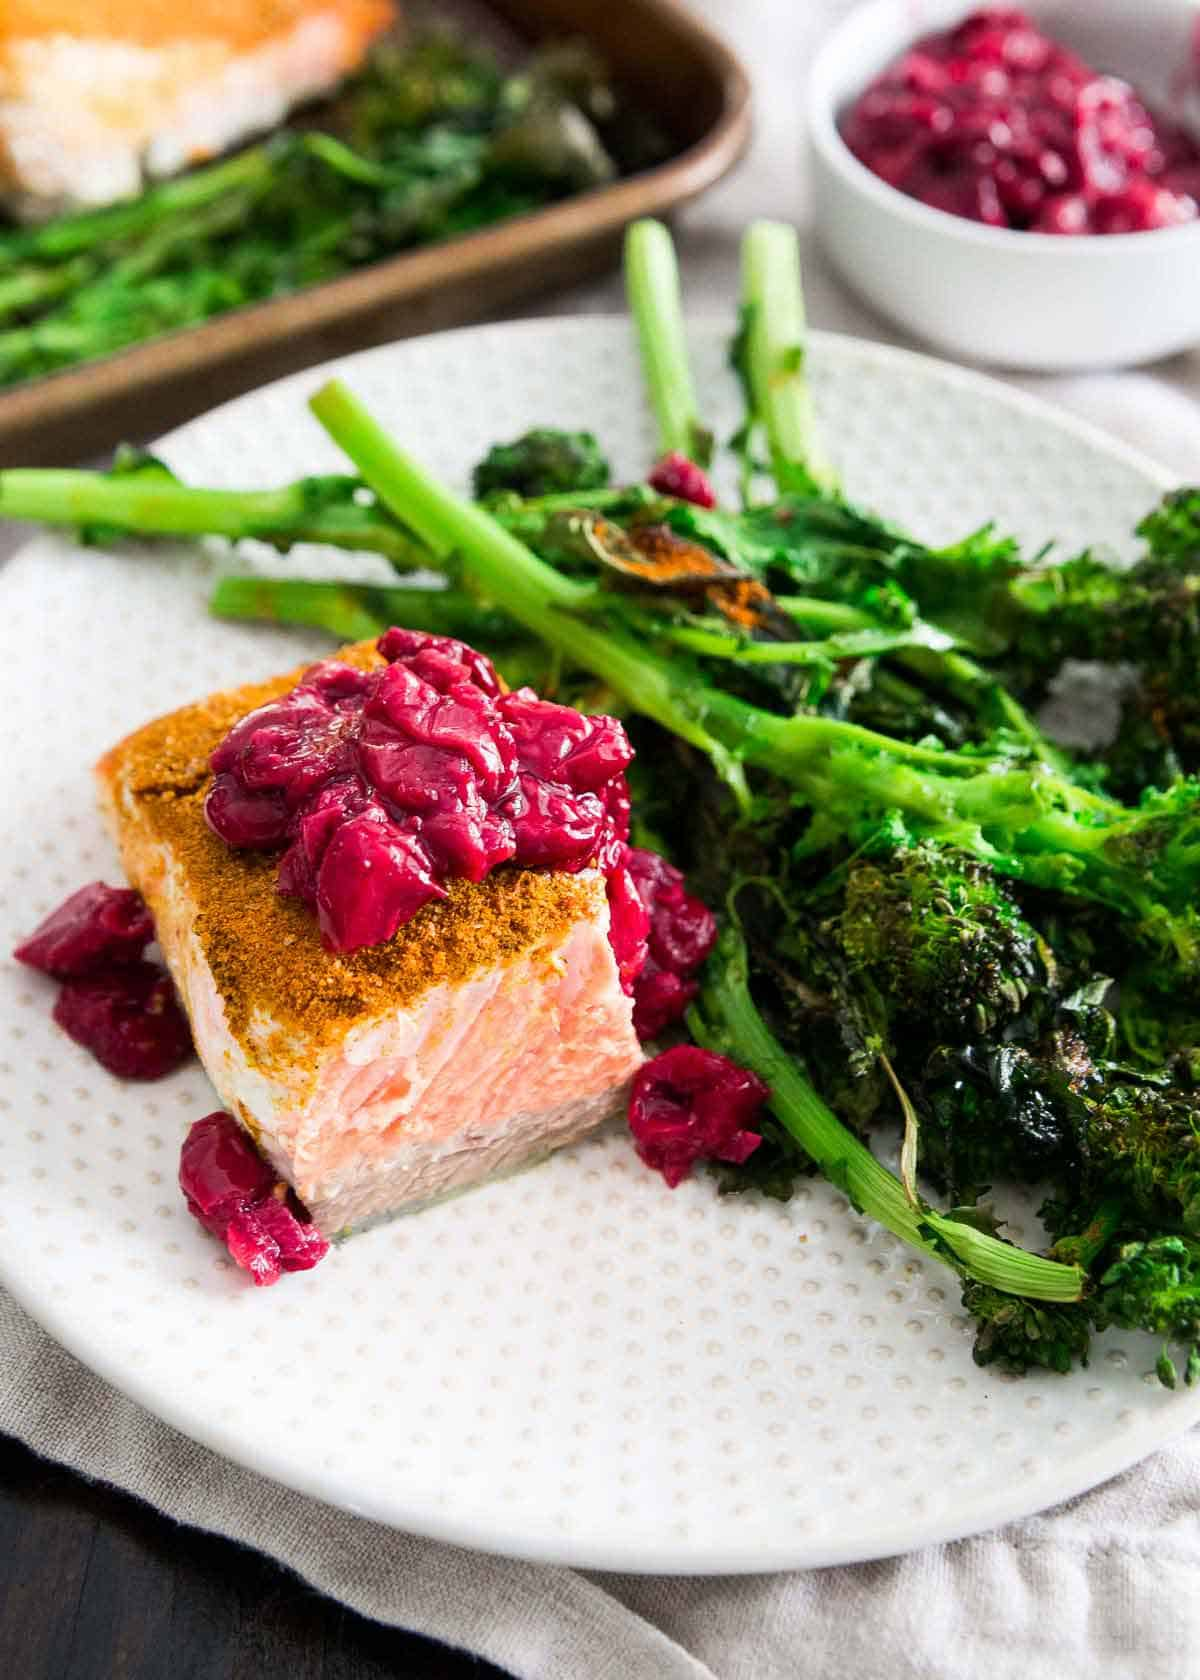 Serve this turmeric salmon and roasted broccoli rabe with a quick and easy tart cherry garlic sauce.